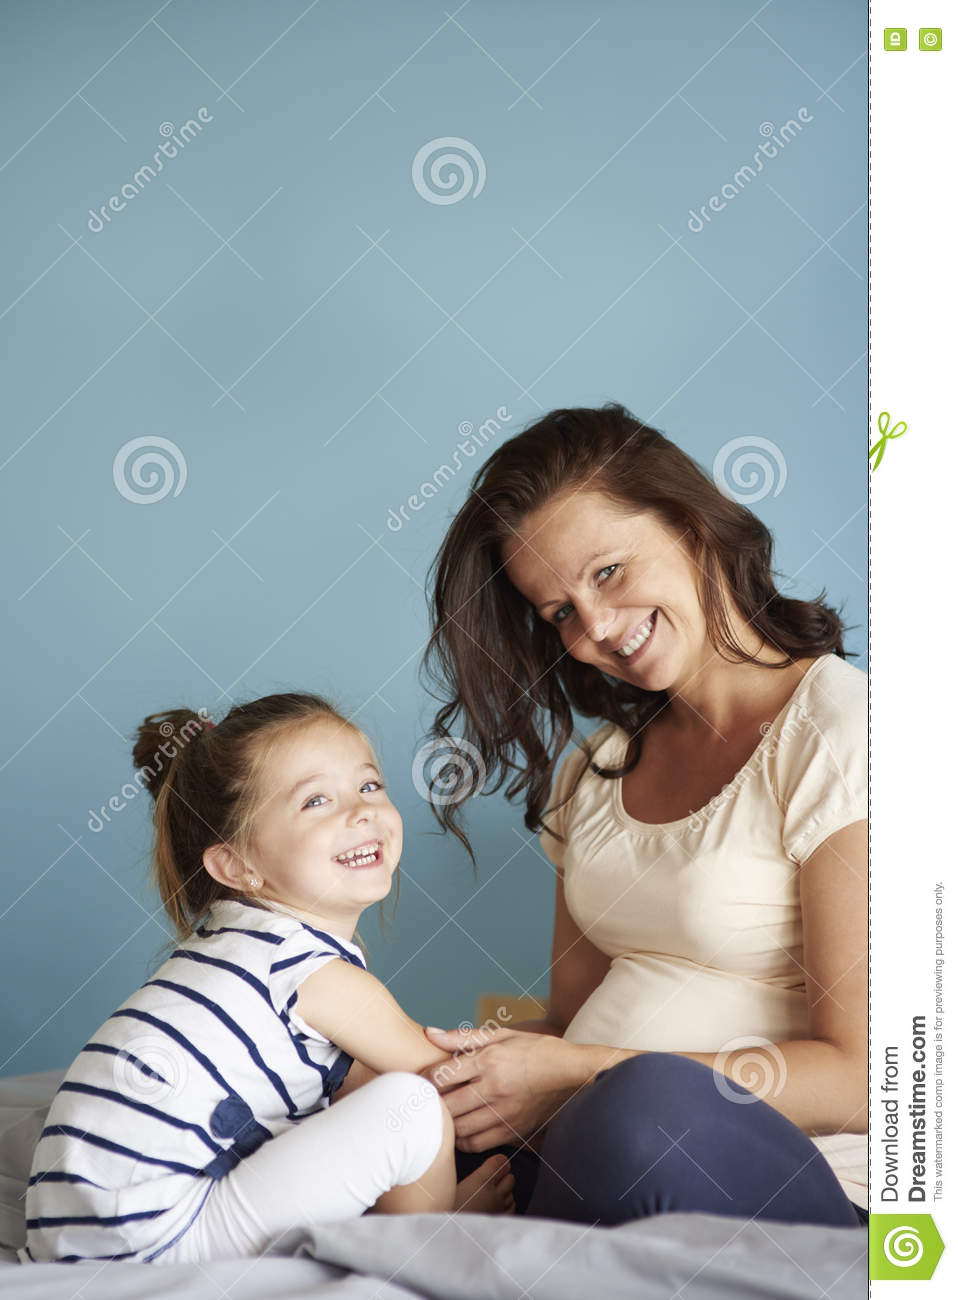 Little Girl With Pregnant Mom Stock Photo - Image of front